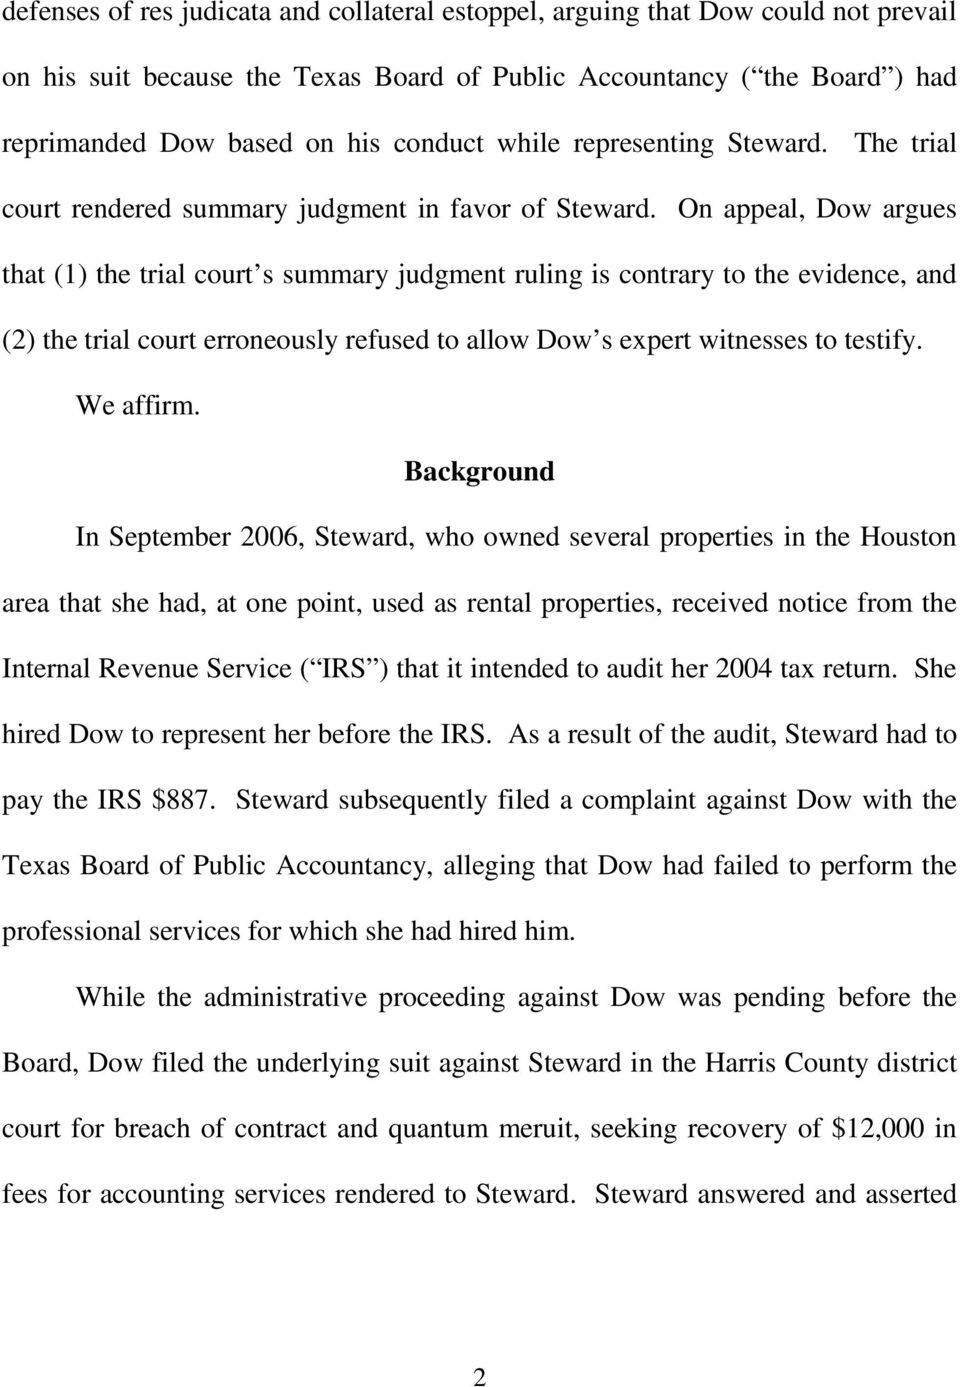 On appeal, Dow argues that (1) the trial court s summary judgment ruling is contrary to the evidence, and (2) the trial court erroneously refused to allow Dow s expert witnesses to testify. We affirm.